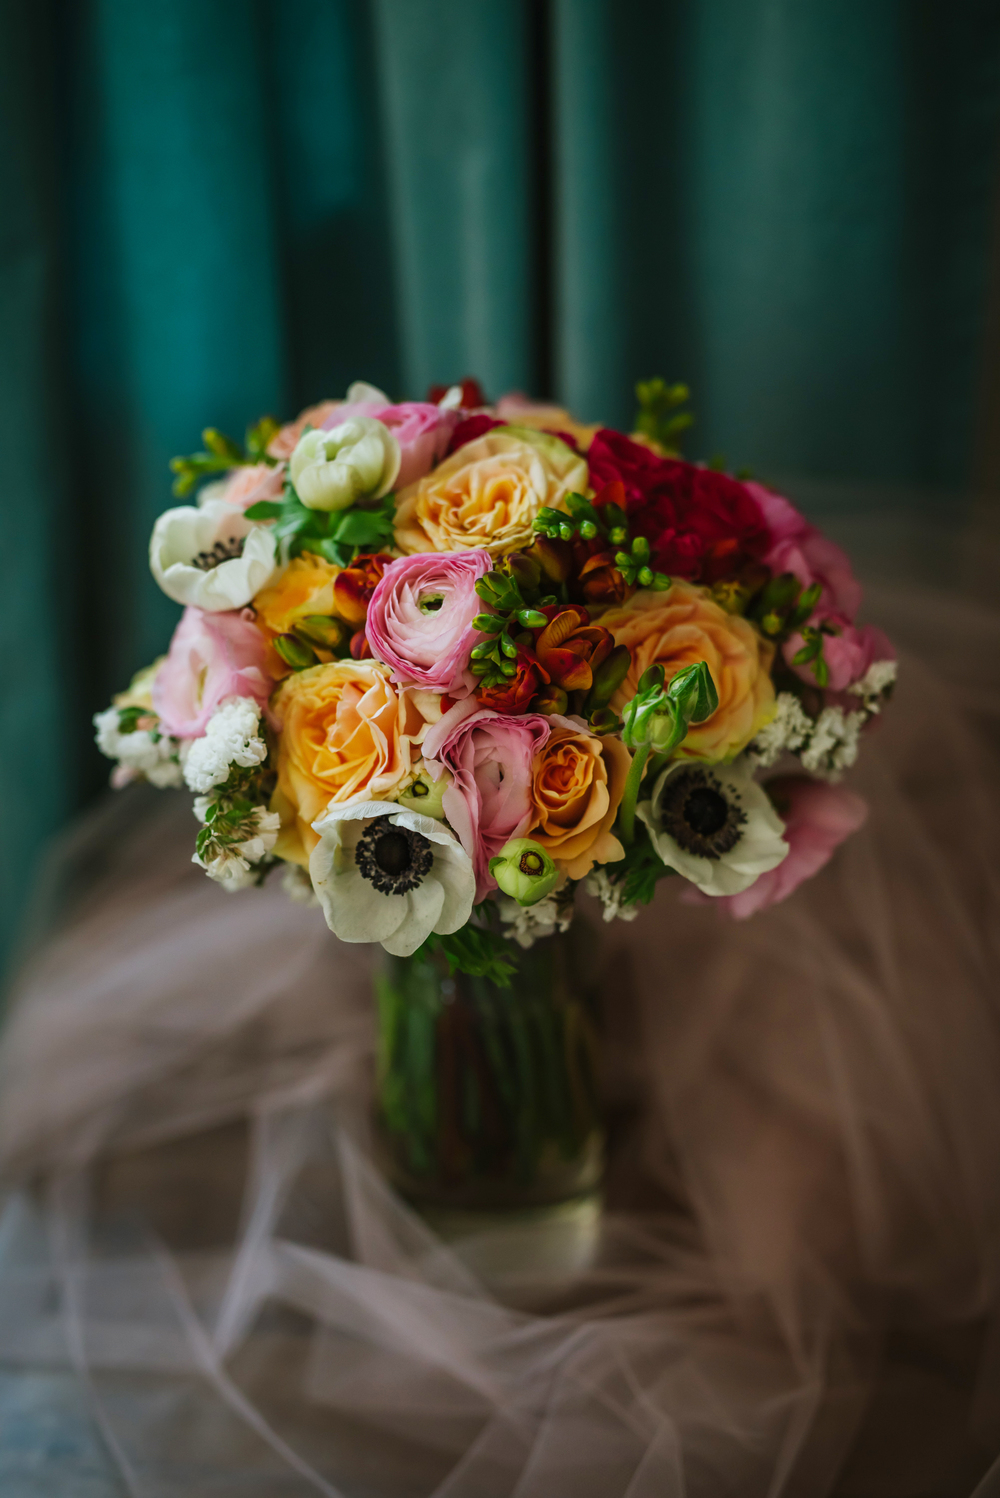 tampa-wedding-photographer-florals-bouquet-green-backyard-st-pete-saint-petersburg